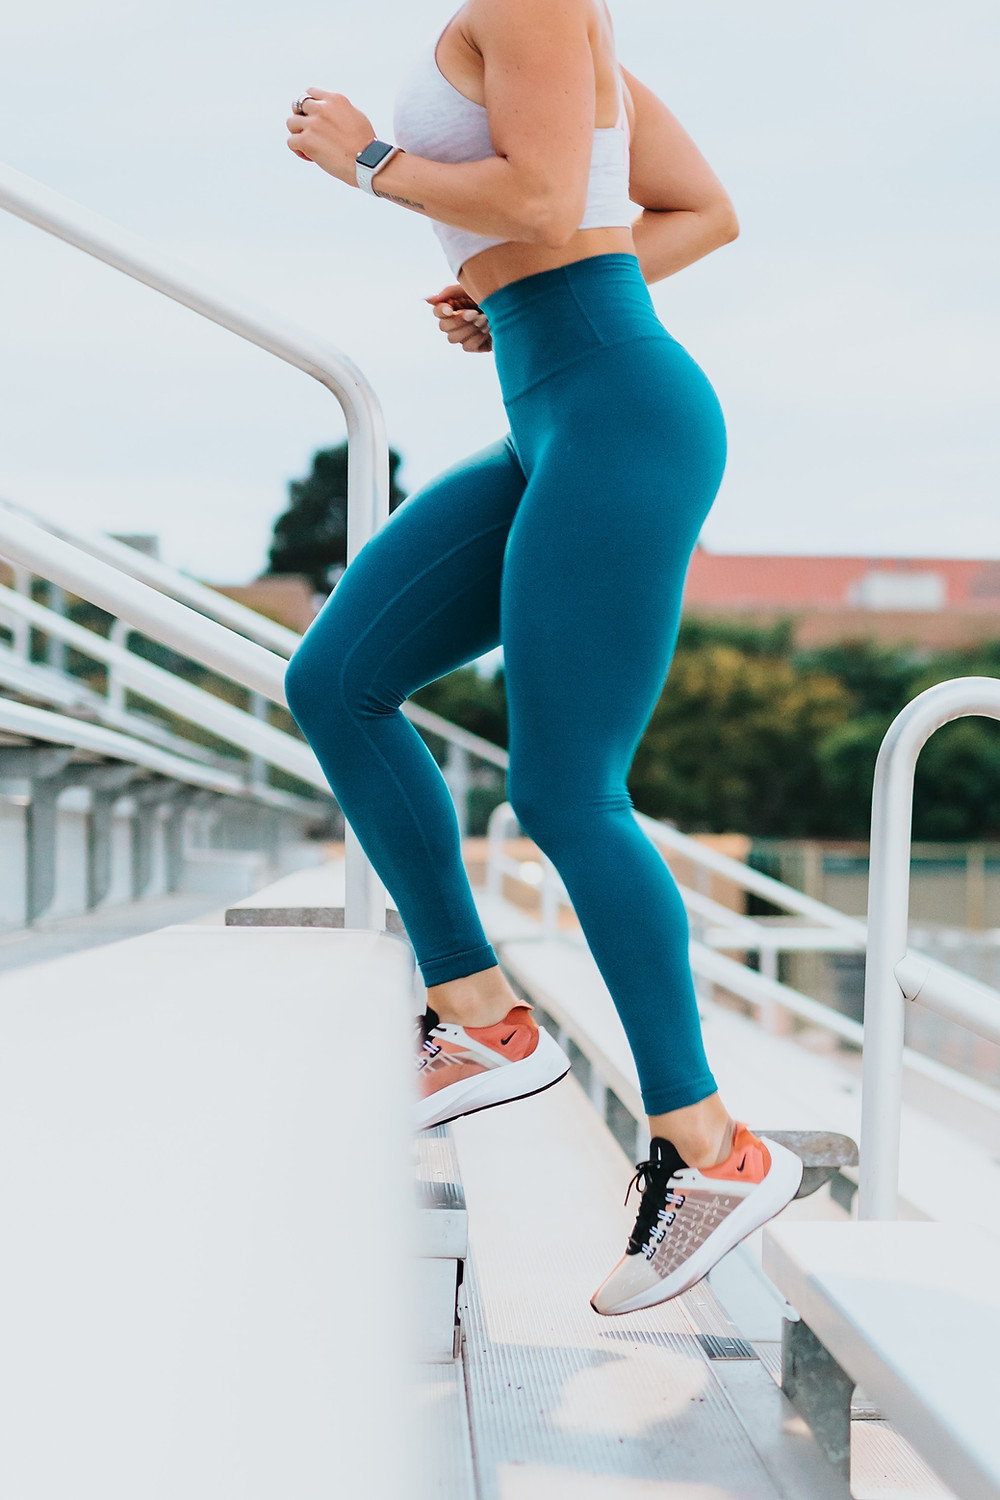 woman running on bleachers increases heart rate